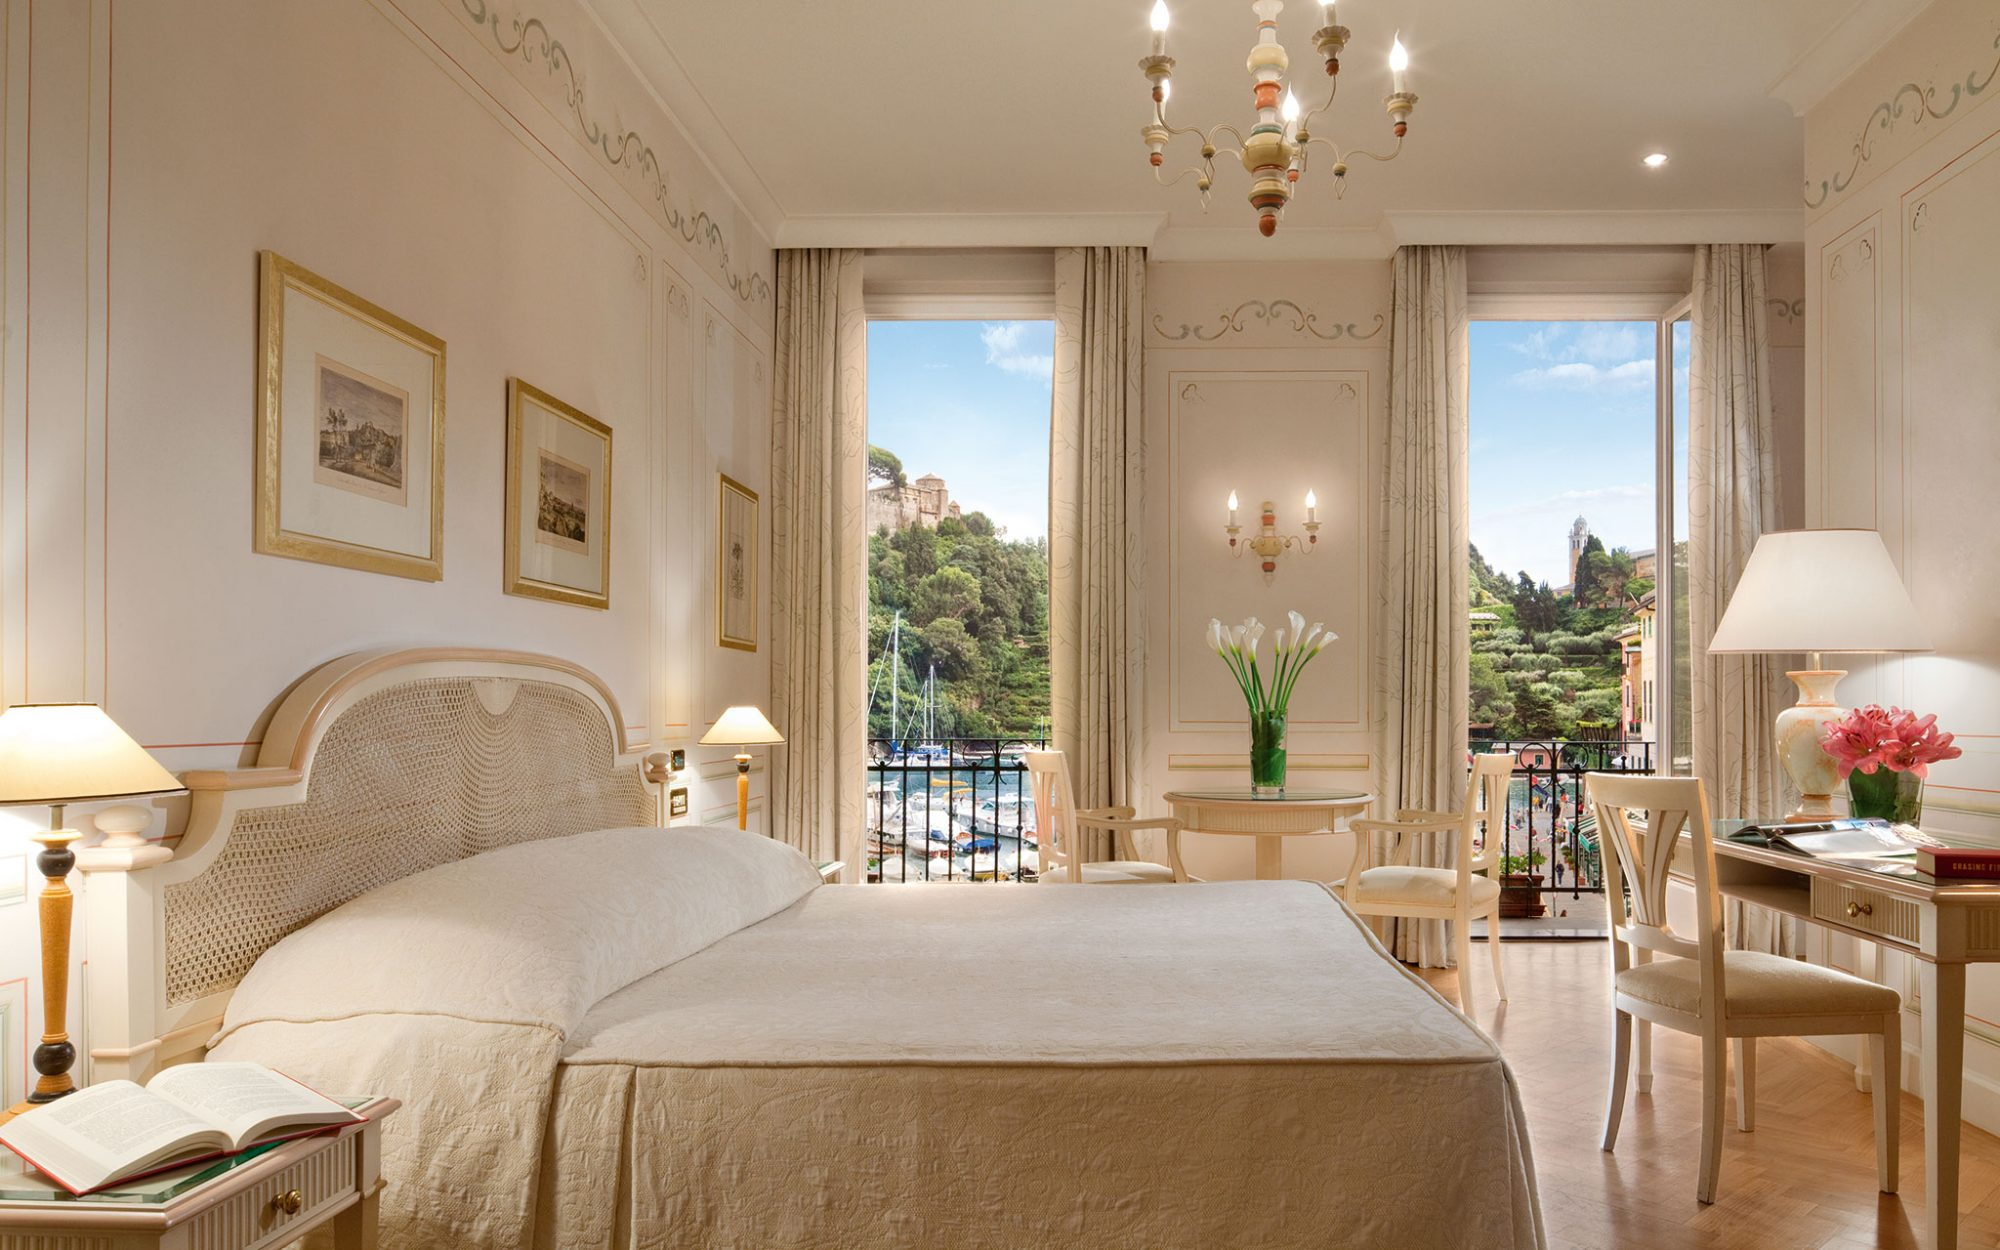 World's Most Romantic Hotels: No. 11 Belmond Hotel Splendido, Portofino, Italy